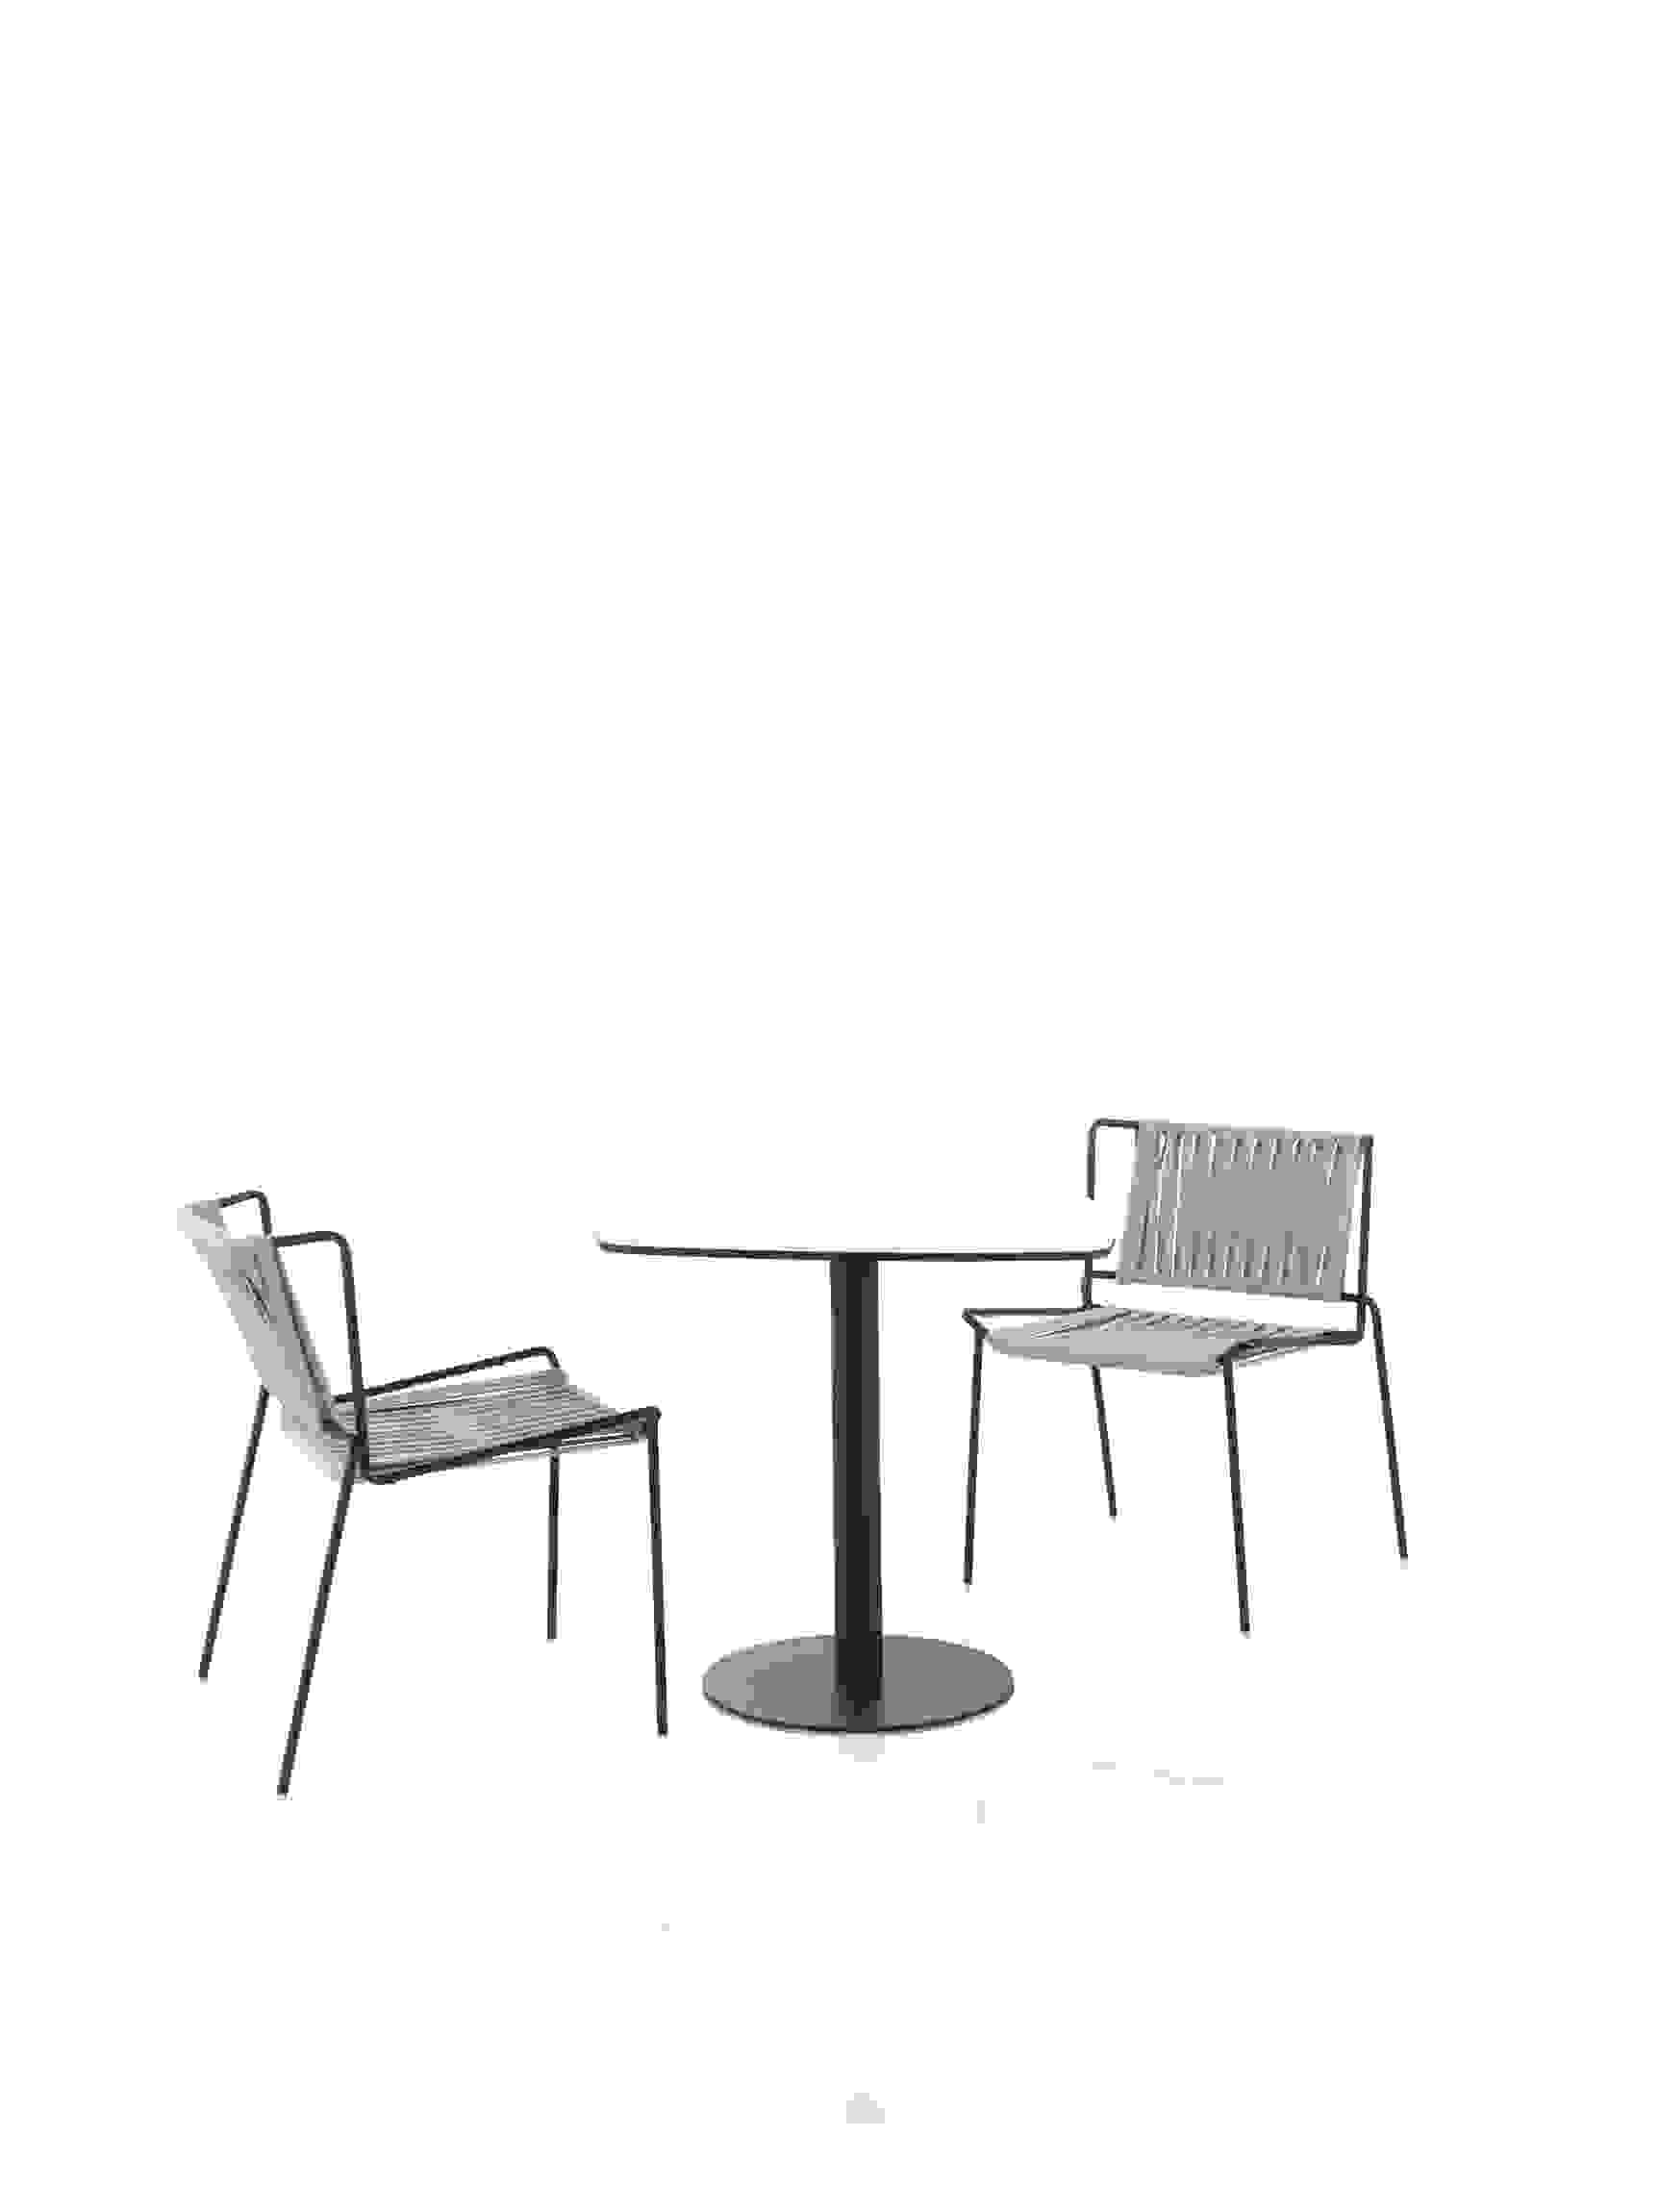 87-expormim-out_line-outdoor-chairs.jpg